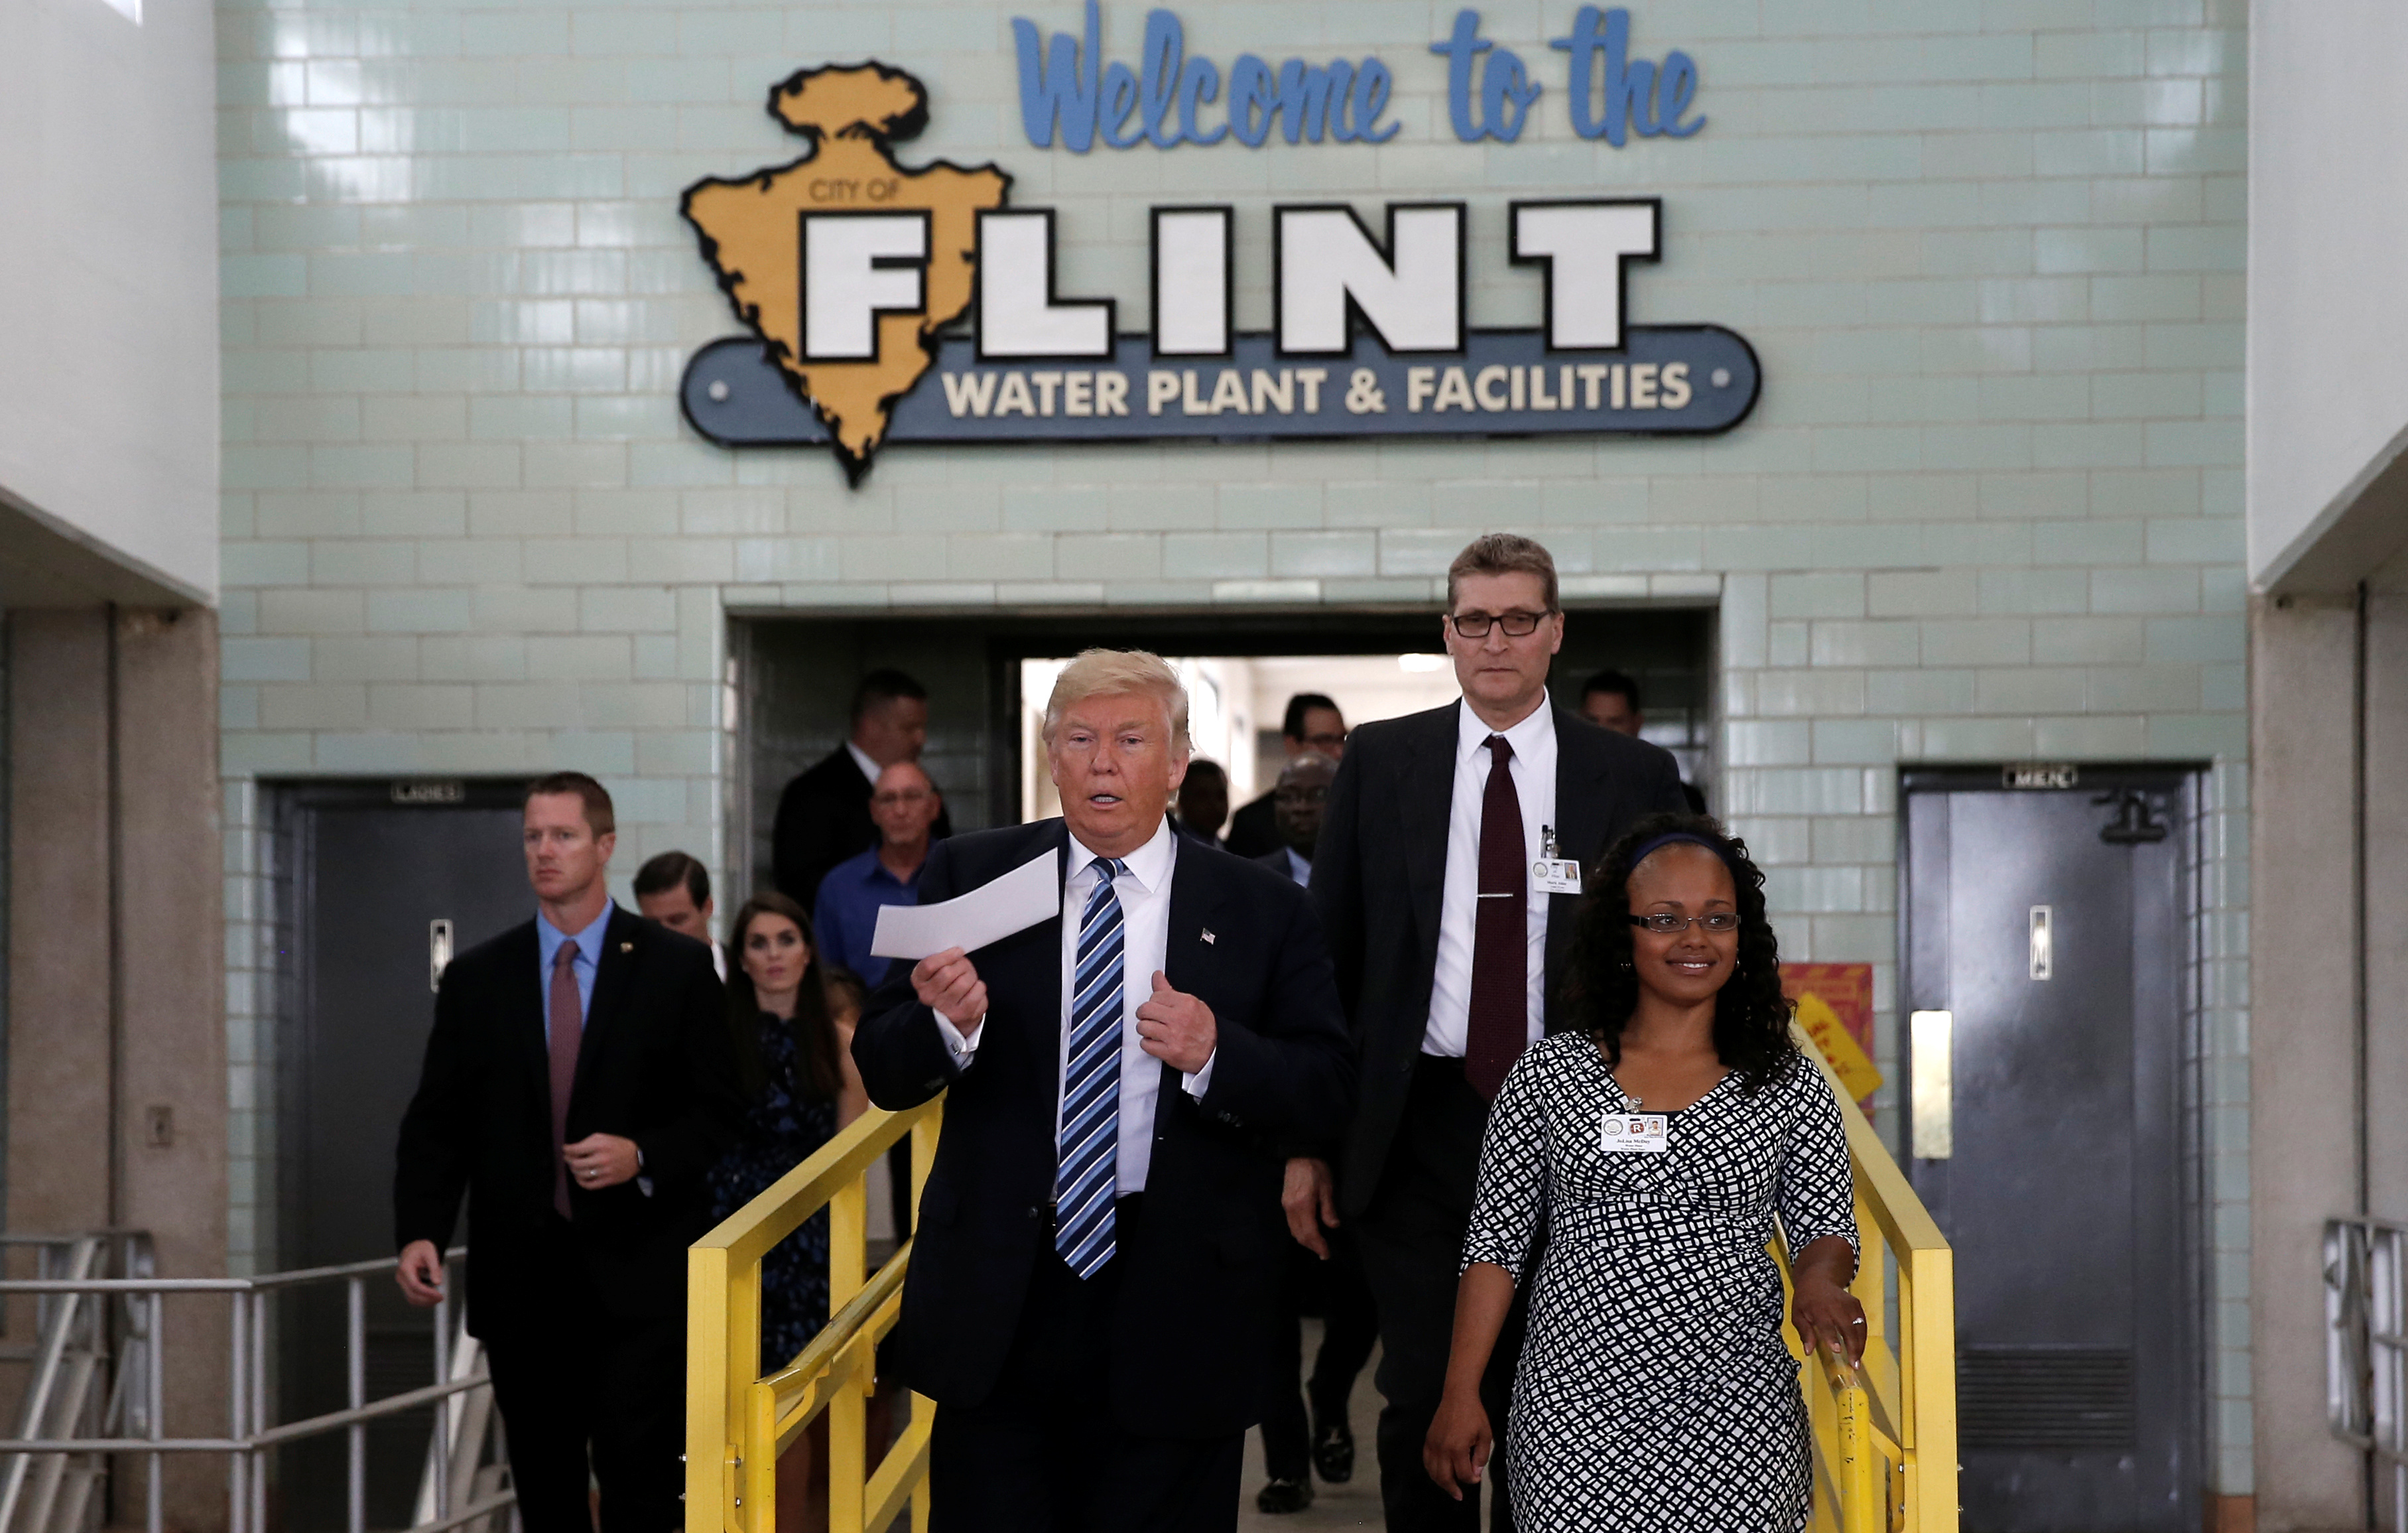 Republican presidential nominee Donald Trump tours the Flint Water Plant and Facilities with JoLisa McDay, Utilities Administrator for the City of Flint